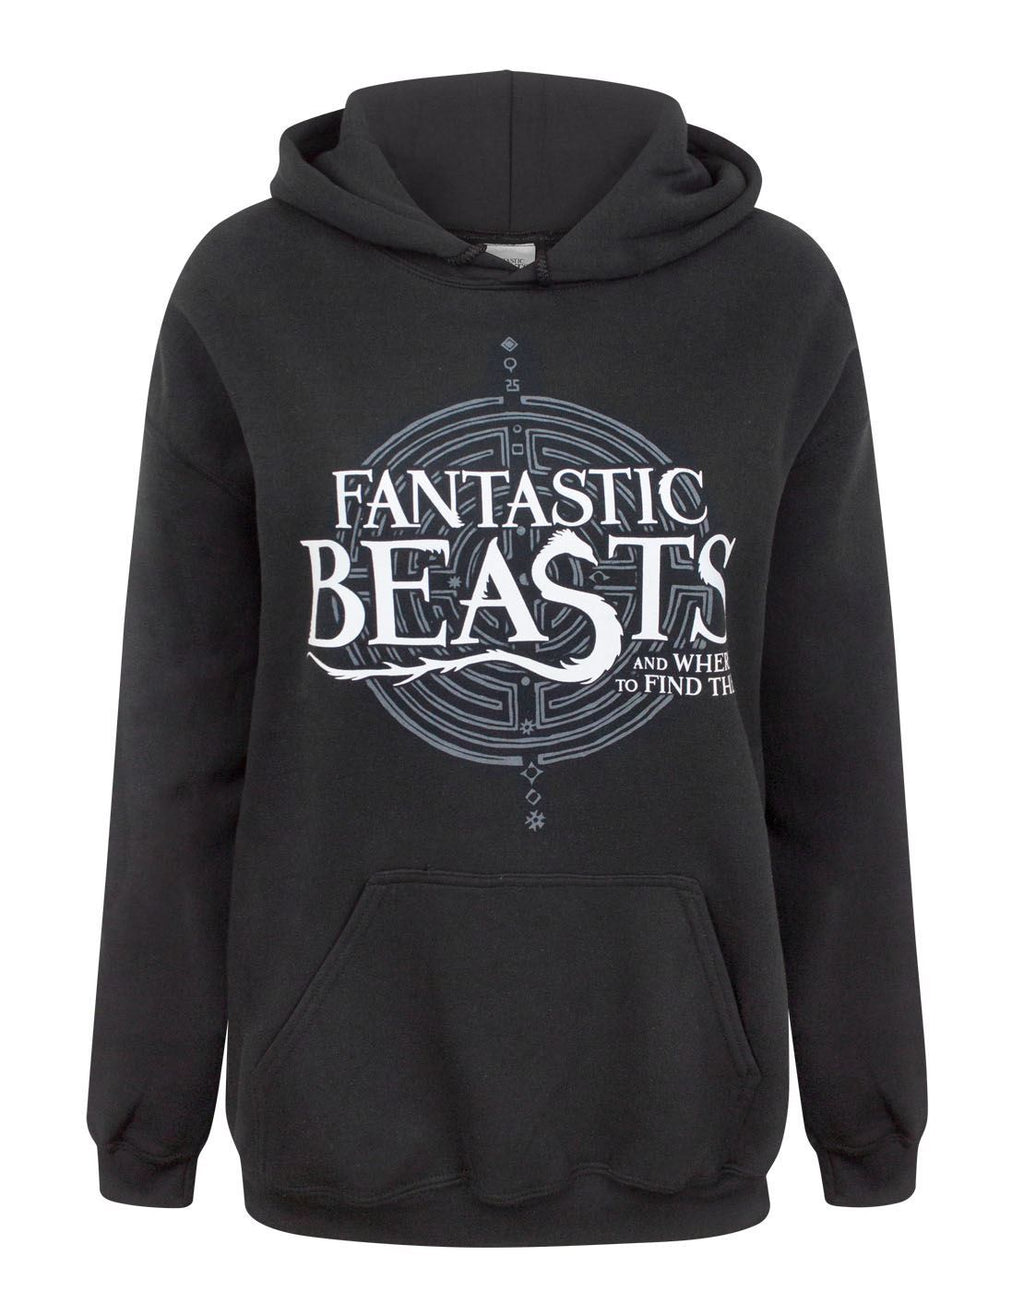 Fantastic Beasts And Where To Find Them Logo Women's Hoodie